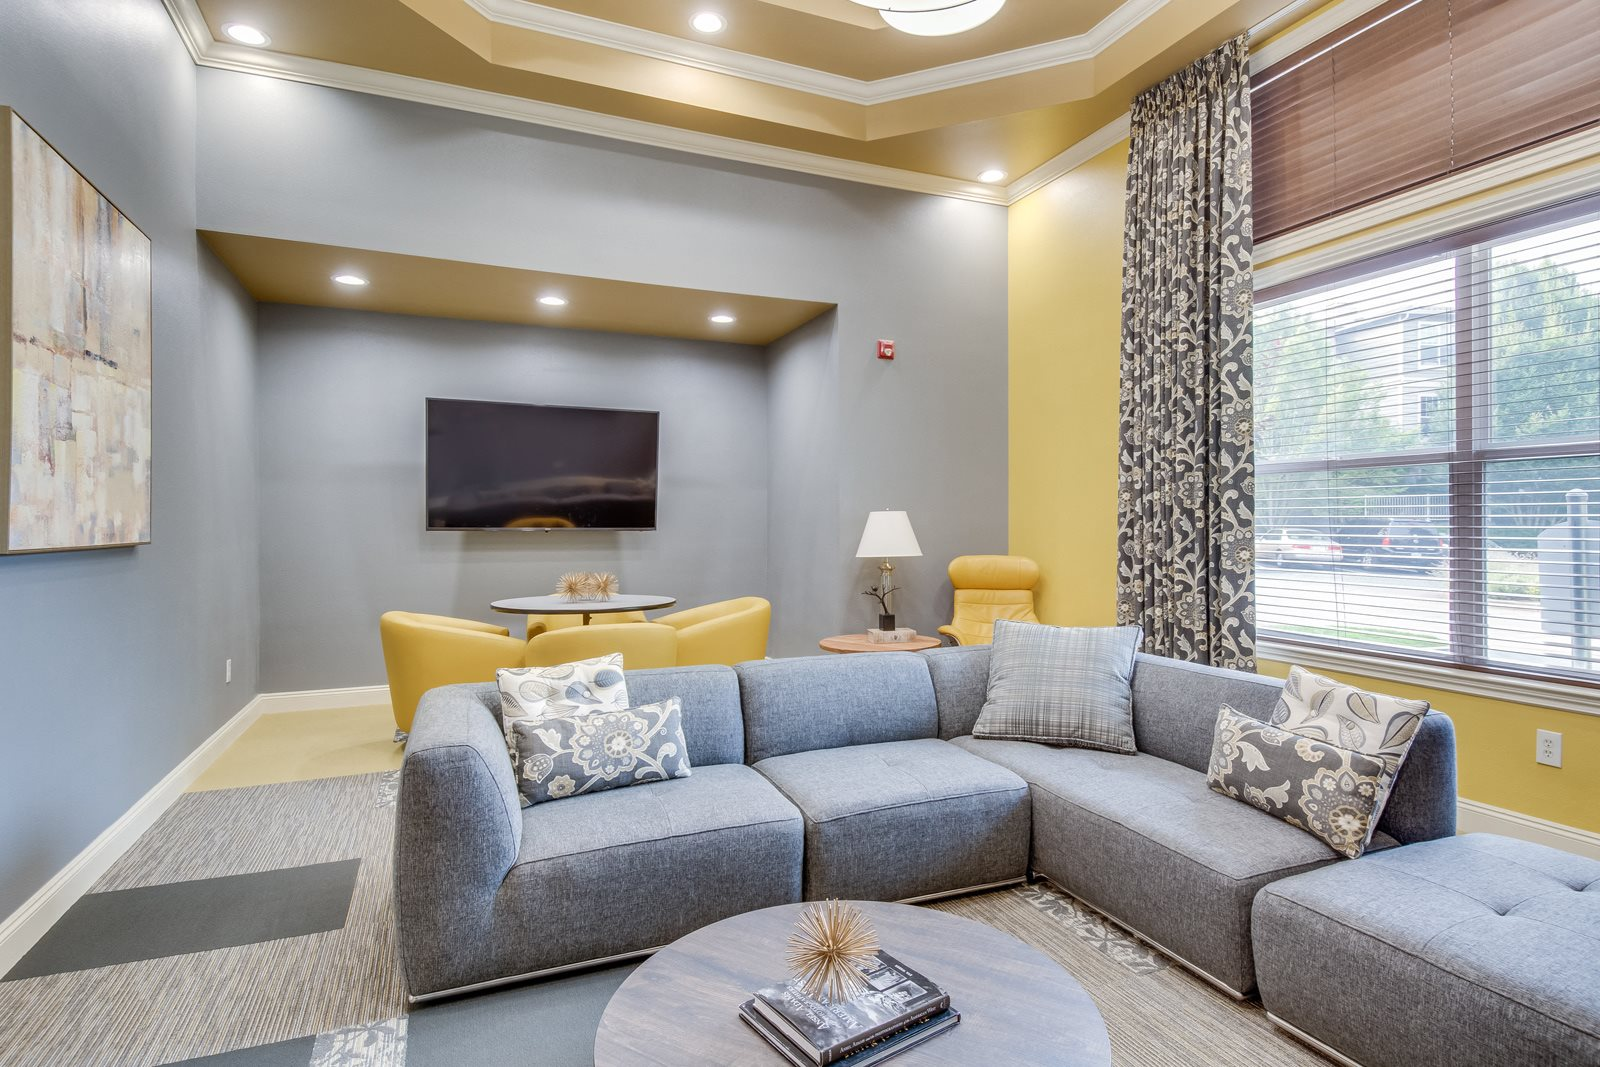 Meeting Space at Reflections by Windsor, 6332 E. Lake Sammamish Parkway NE, Redmond